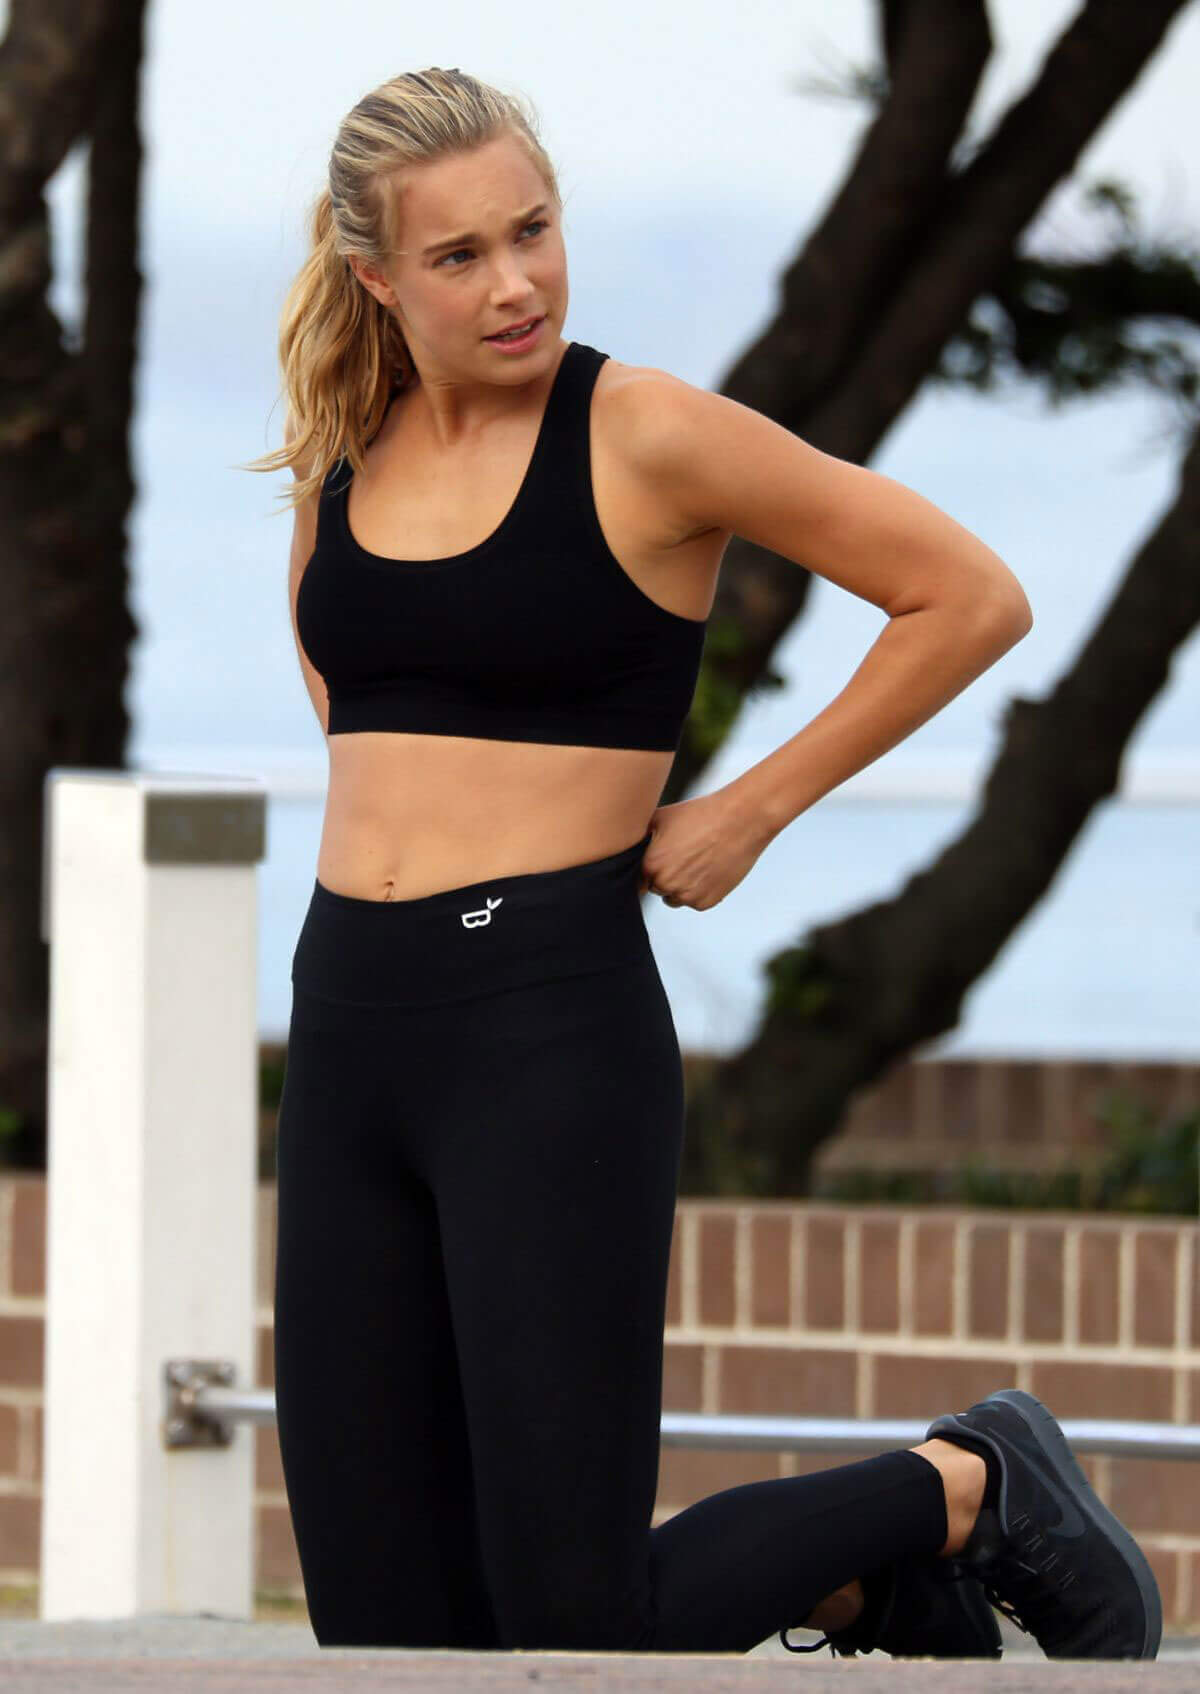 Nathalie Darcas Stills on the Set of a Photoshoot for Gym Wear